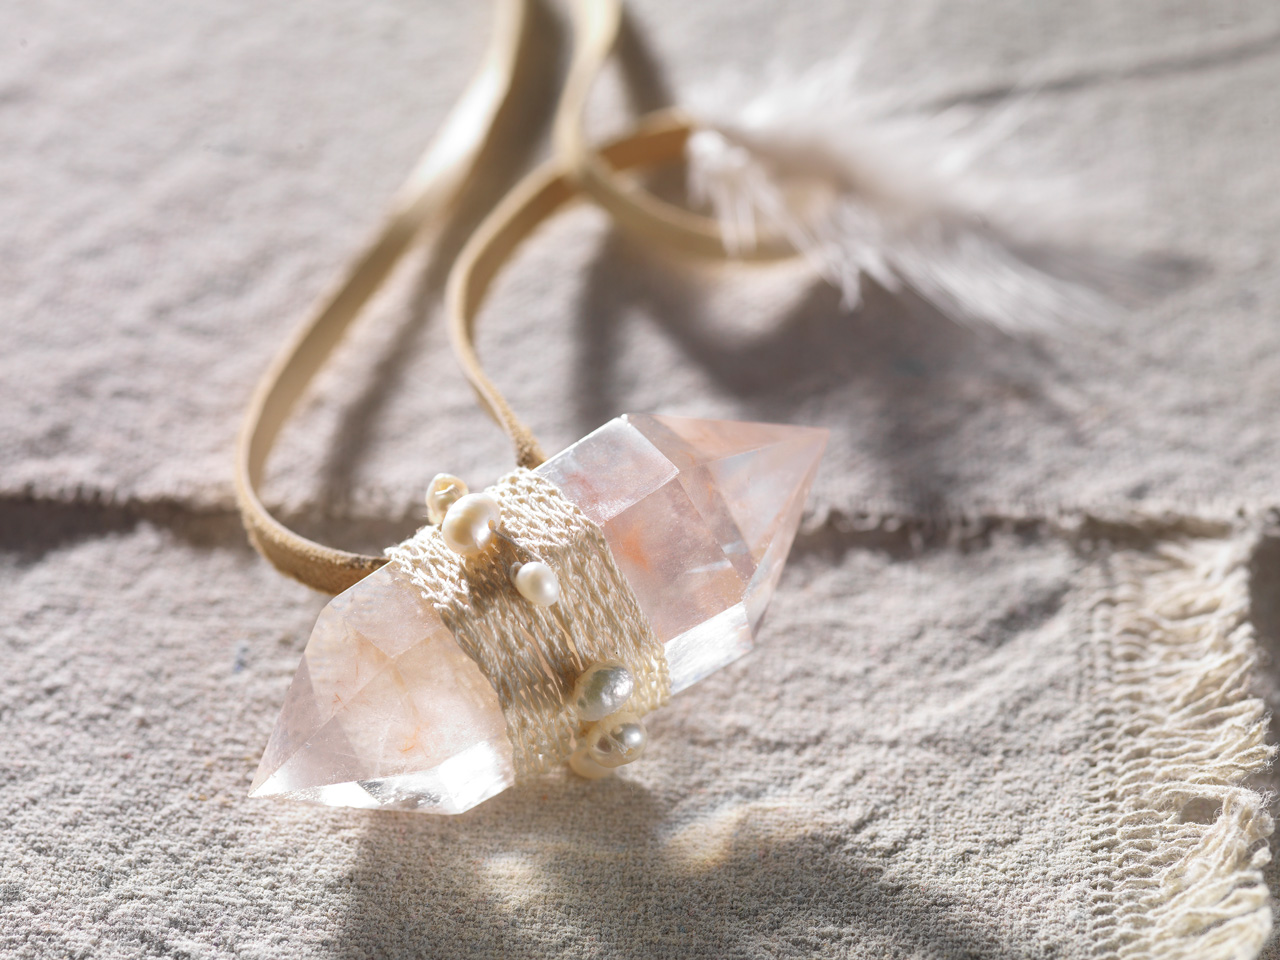 Marx_Photography_Jewelry_Crystal